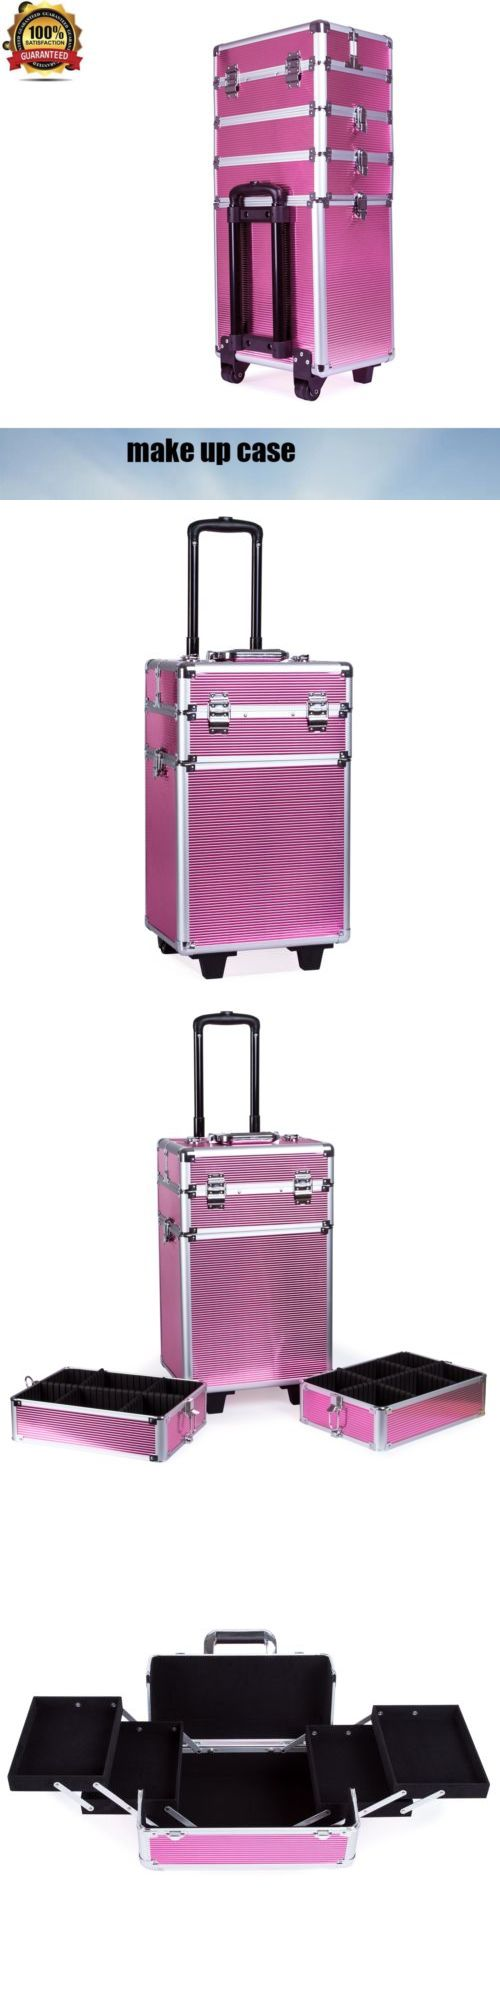 Makeup Bags and Cases: Professional Makeup Rolling Hair Stylist Case 4 In 1 Organizer Trolley Aluminum -> BUY IT NOW ONLY: $69.63 on eBay!